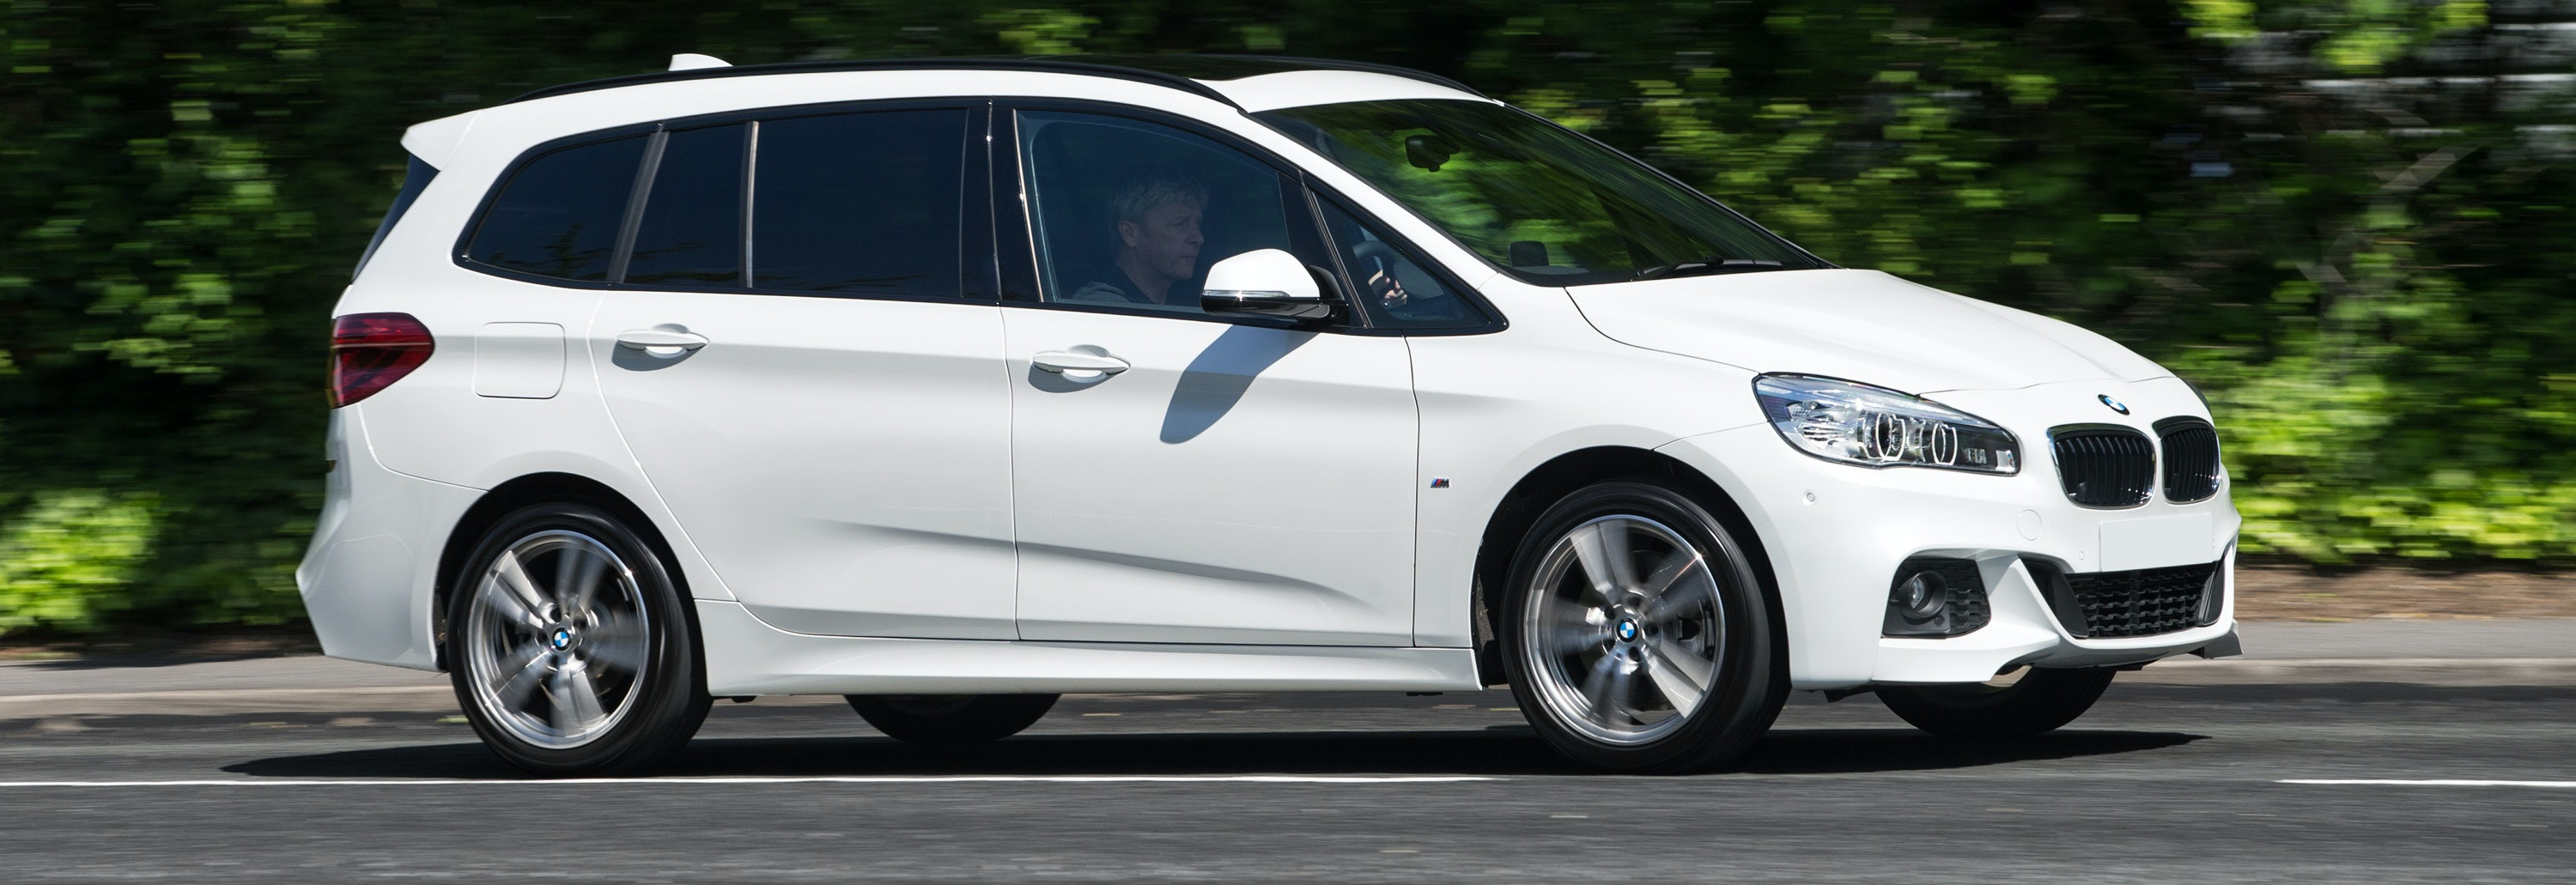 2018 bmw 2 series gran tourer white driving side profile